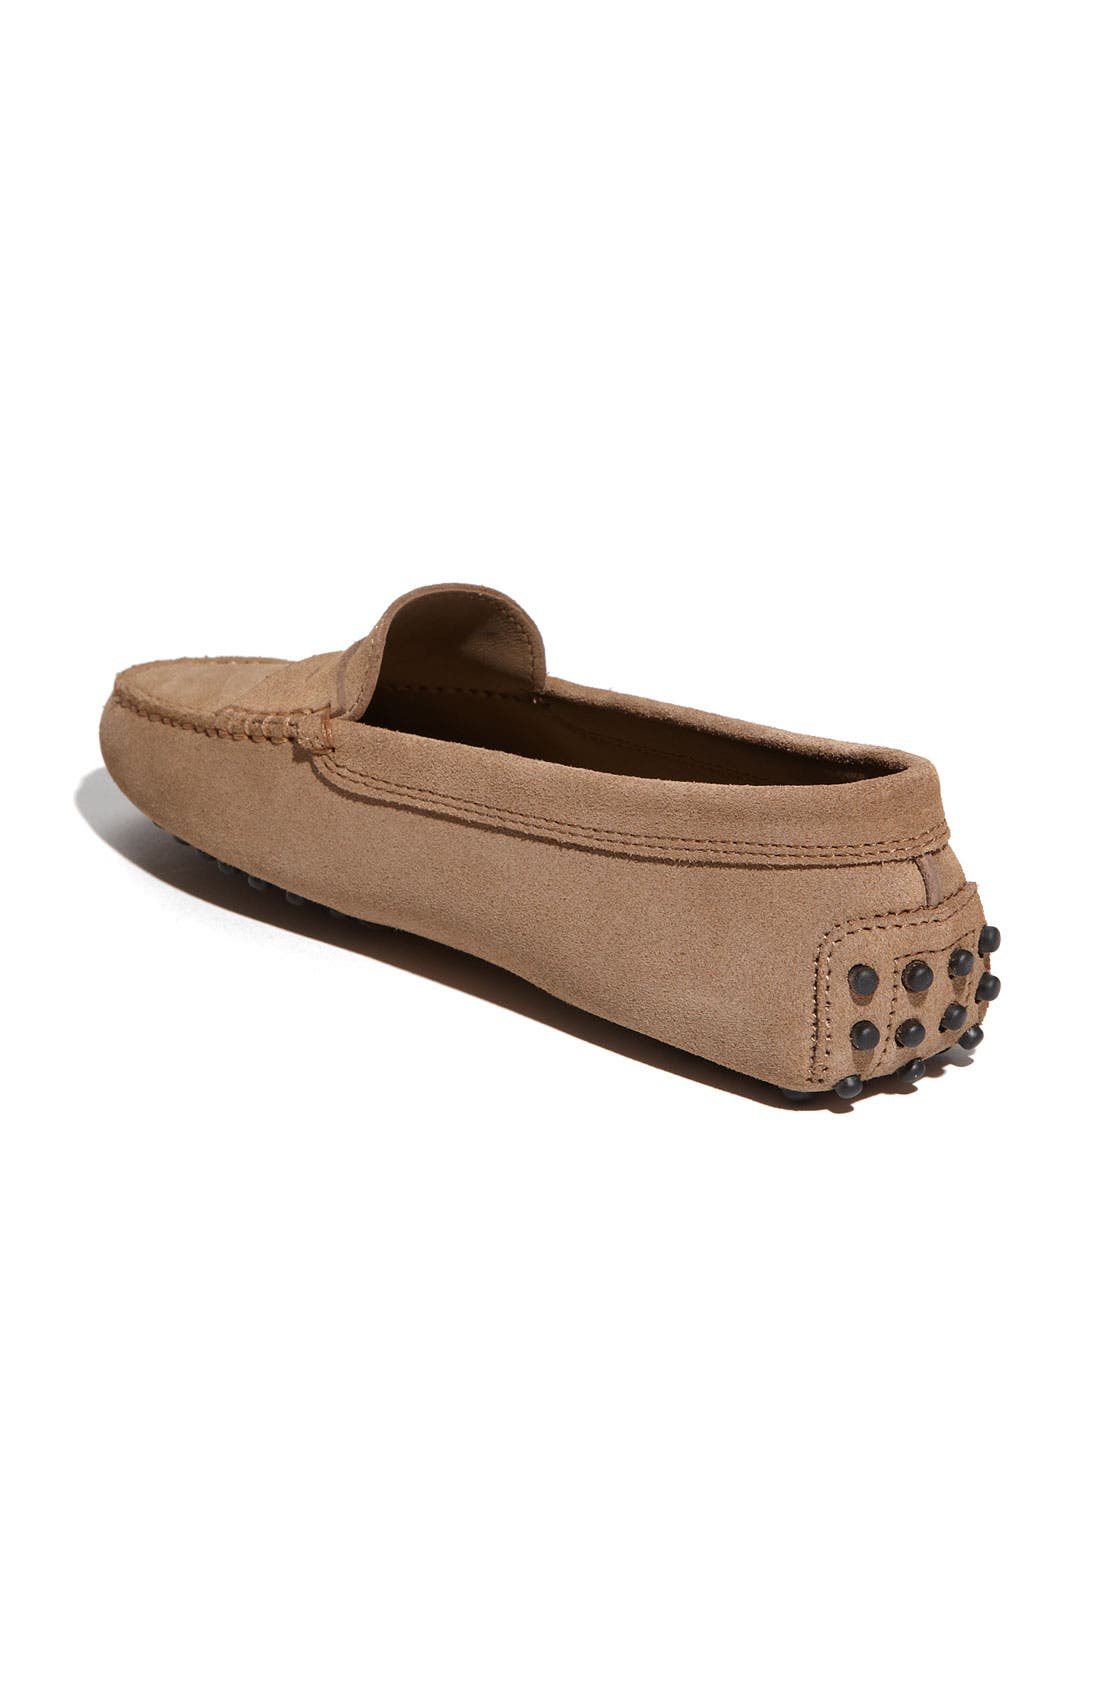 'Gommini' Moccasin,                             Alternate thumbnail 5, color,                             TOBACCO